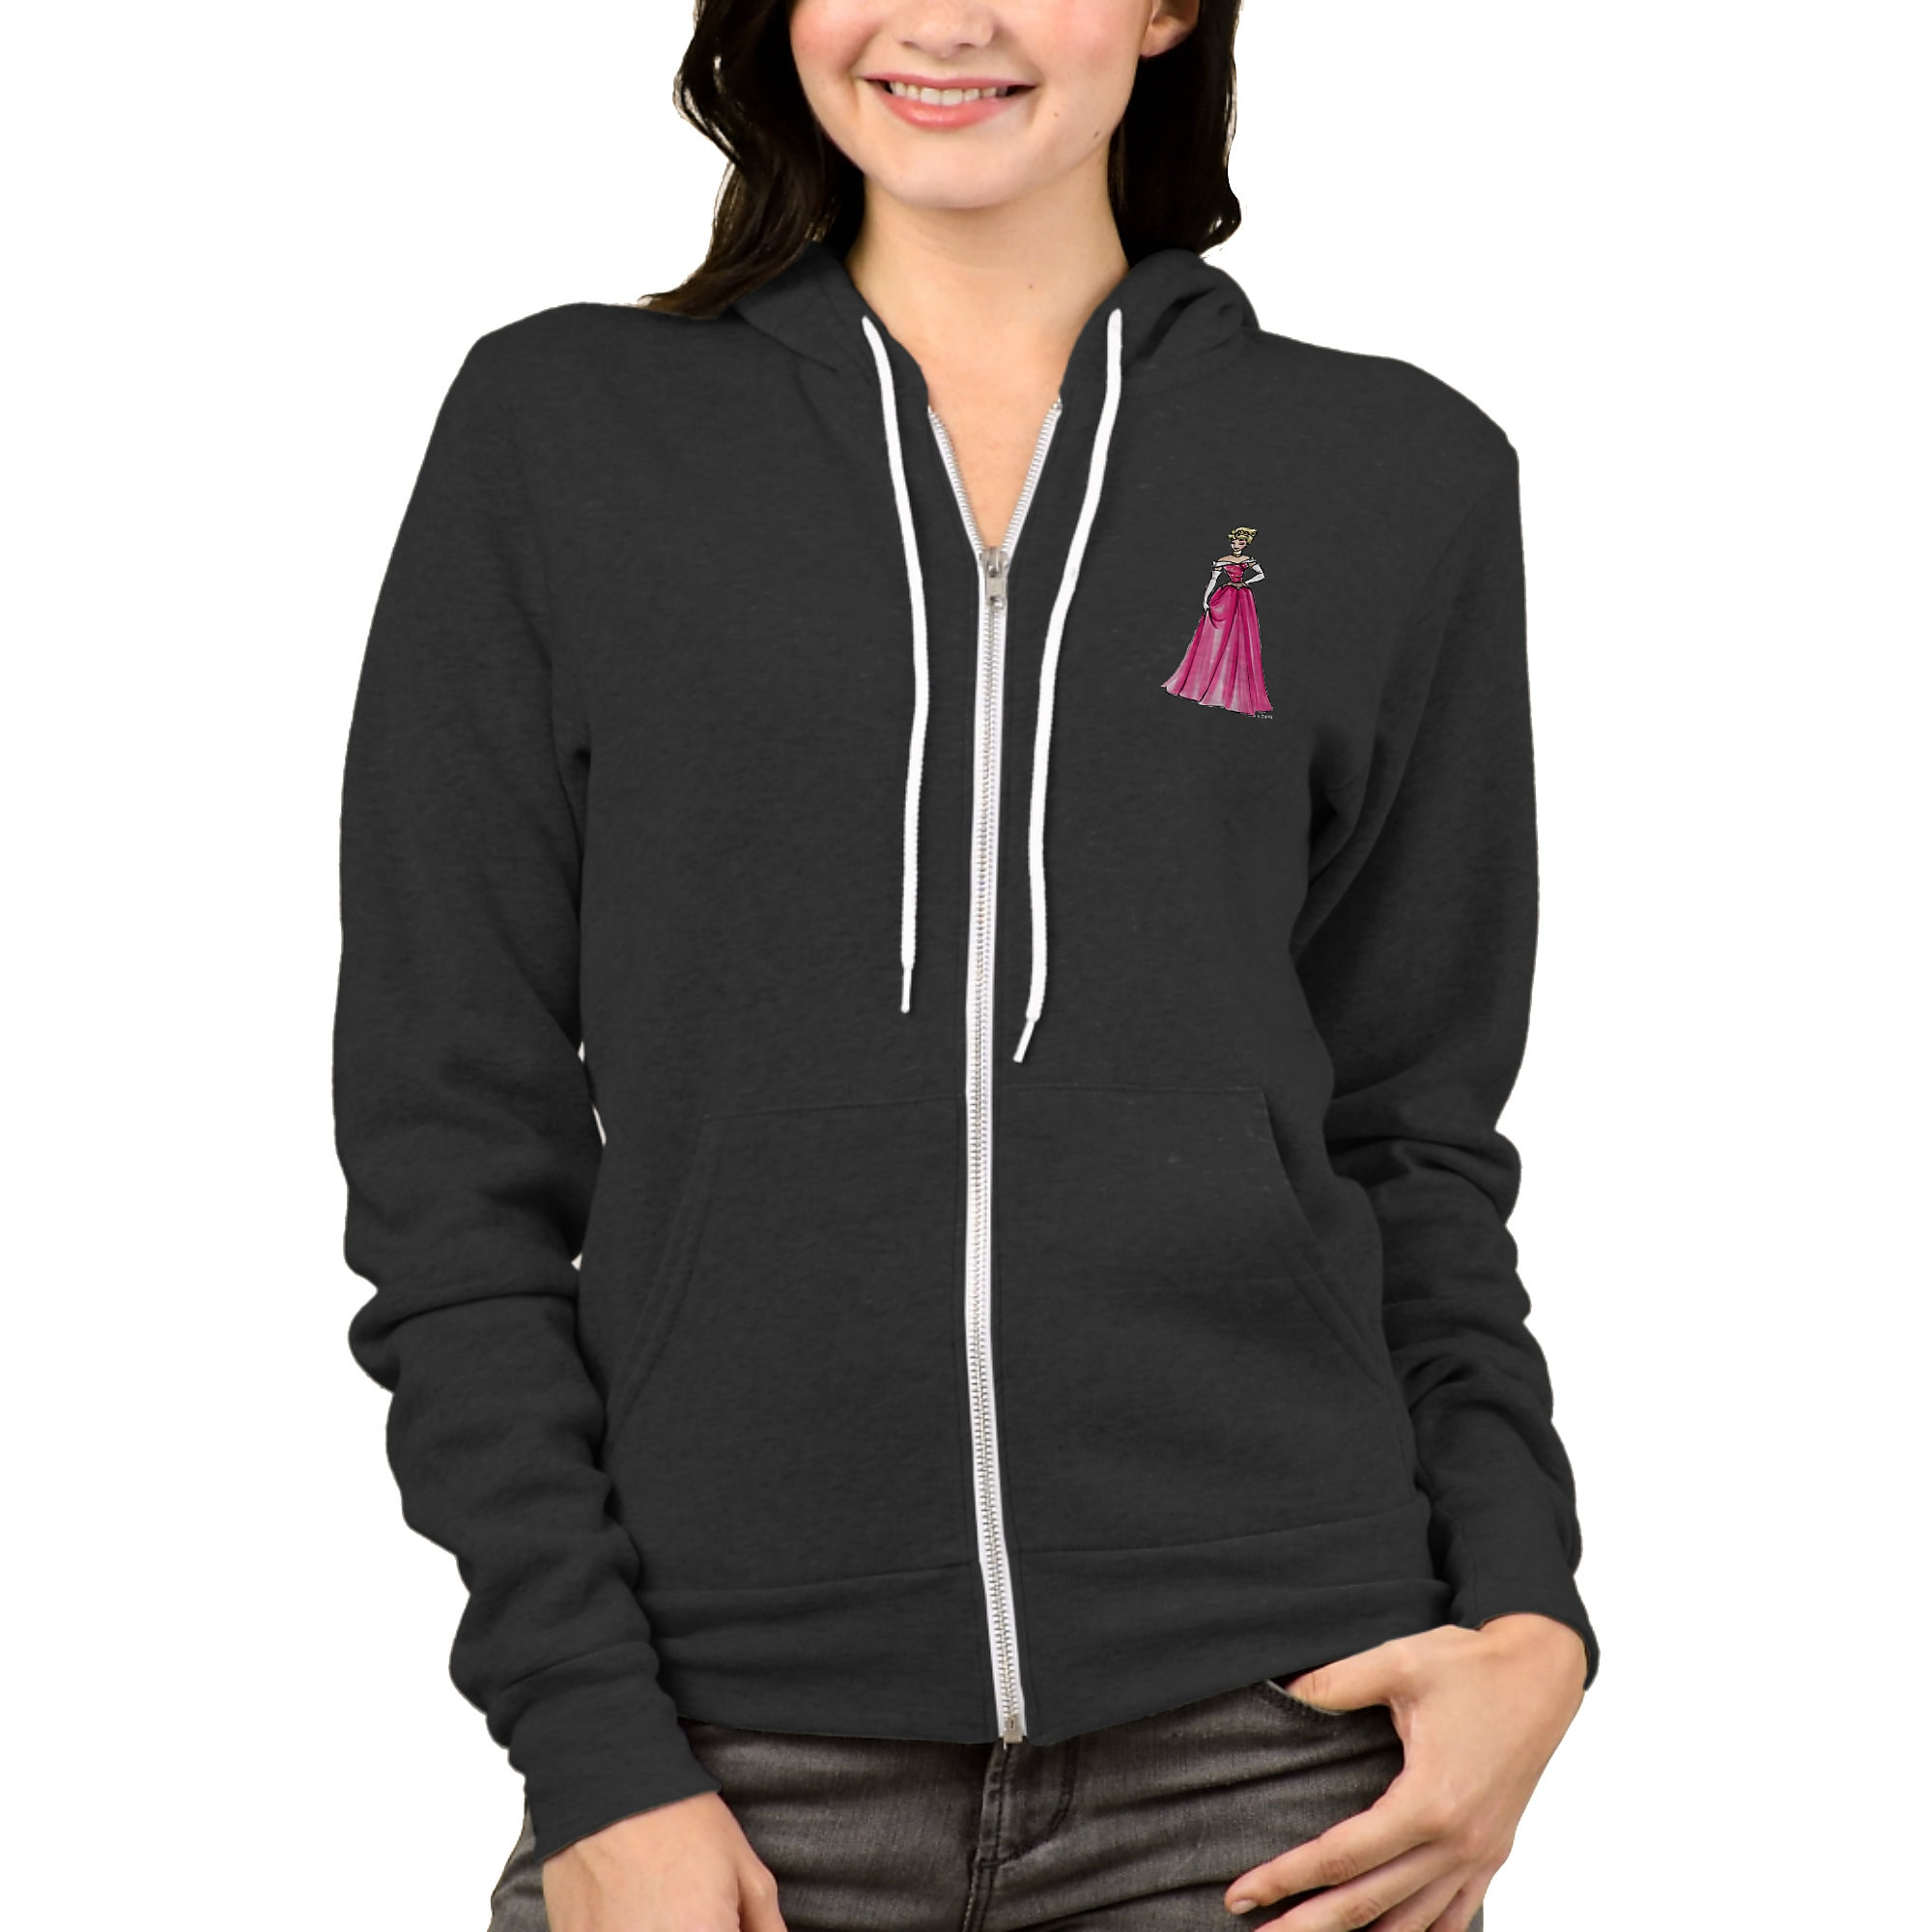 Aurora Zip Hoodie for Women - Art of Princess Designer Collection